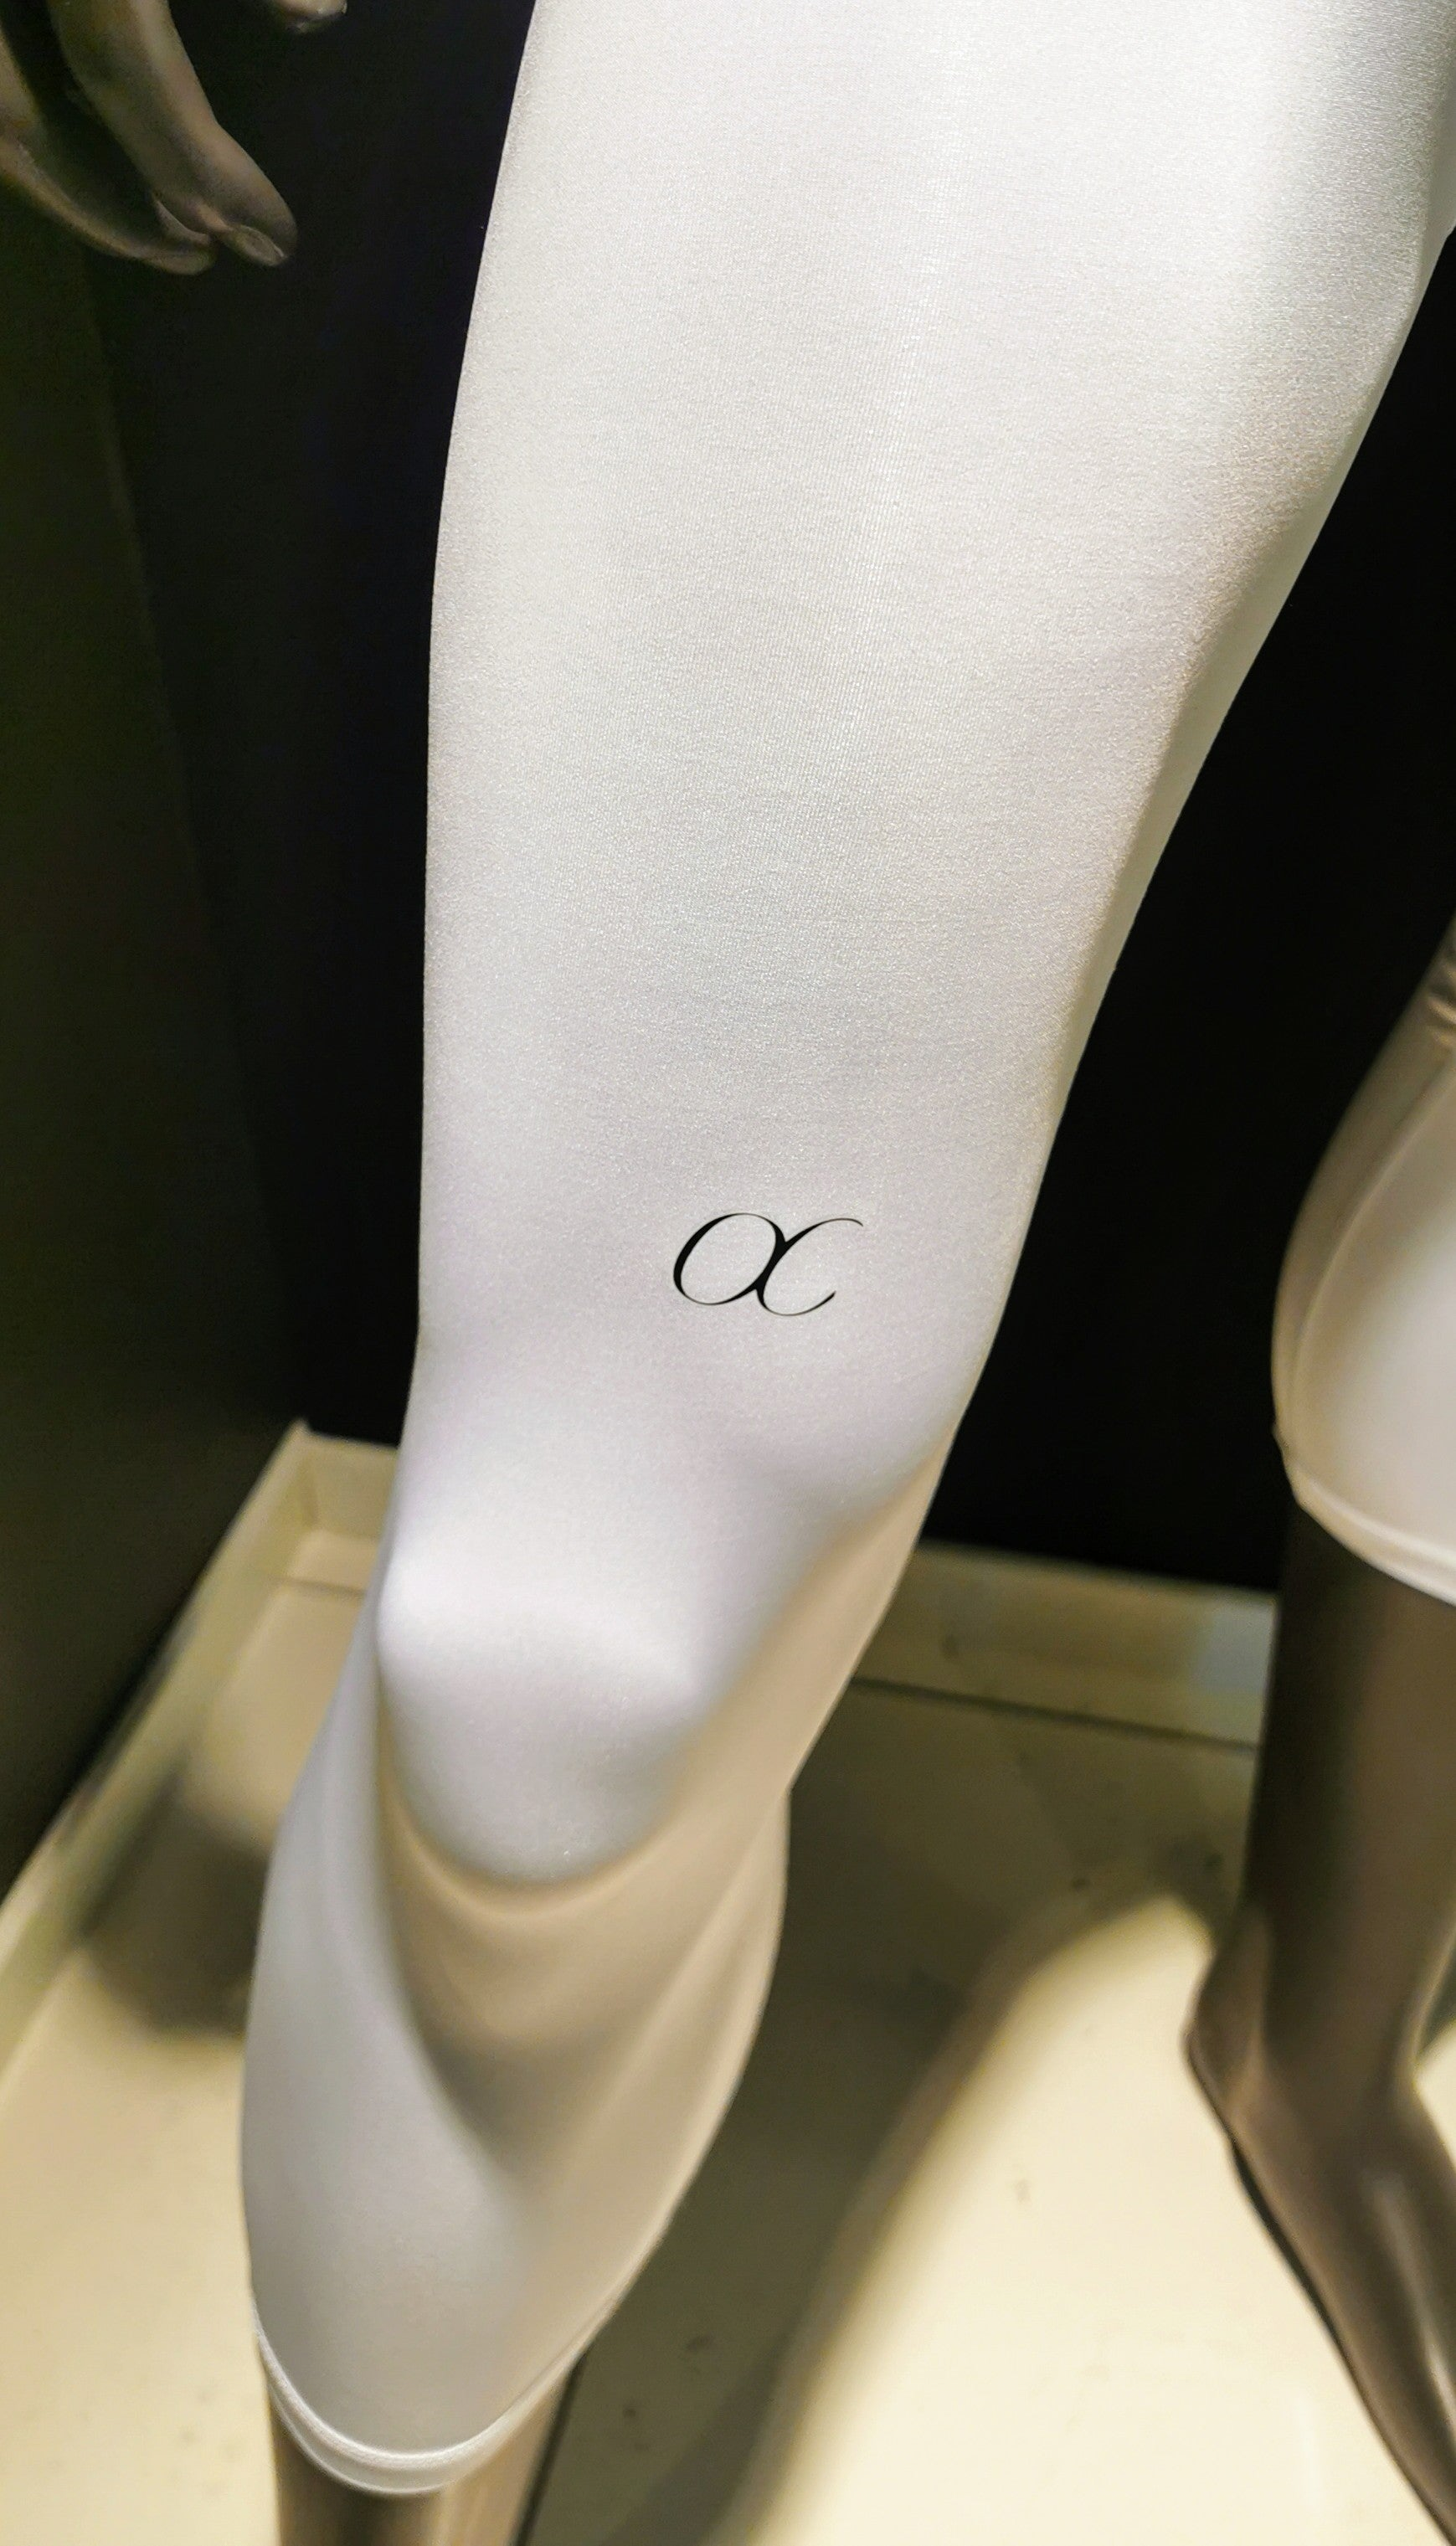 OC Tights